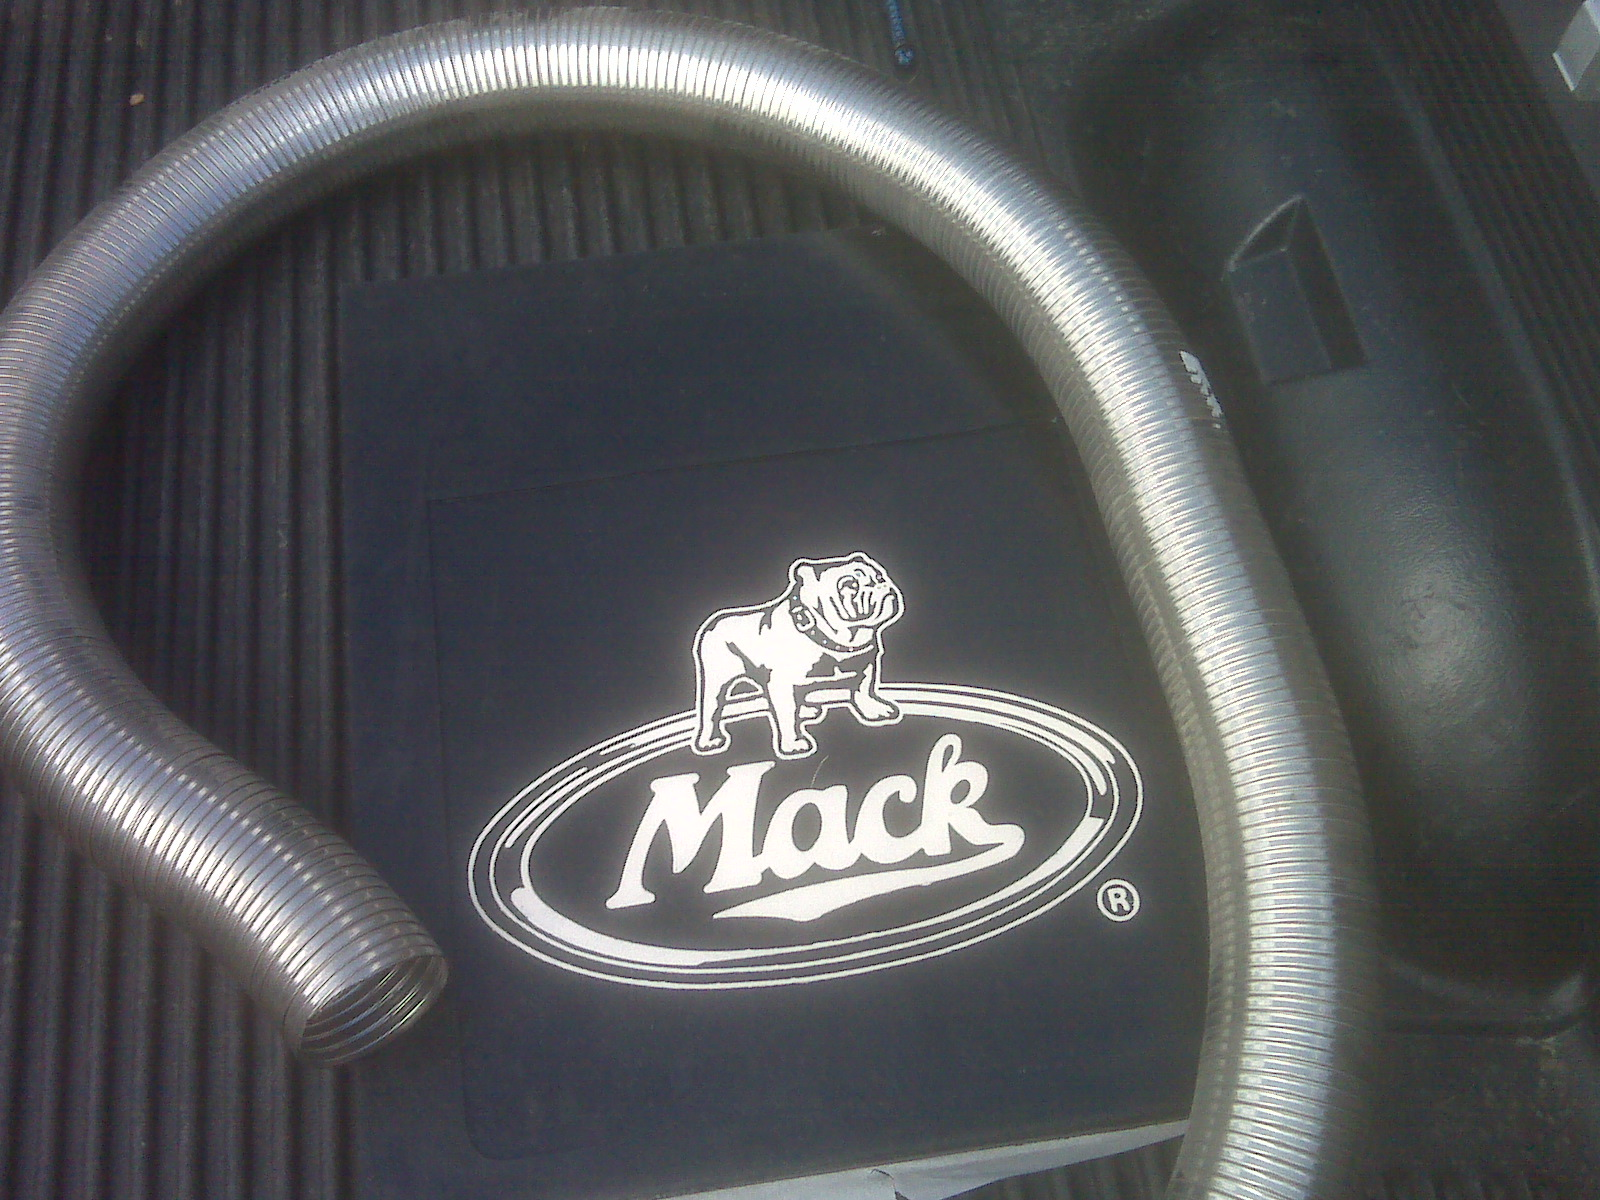 picked up 4 Mack mudflaps.